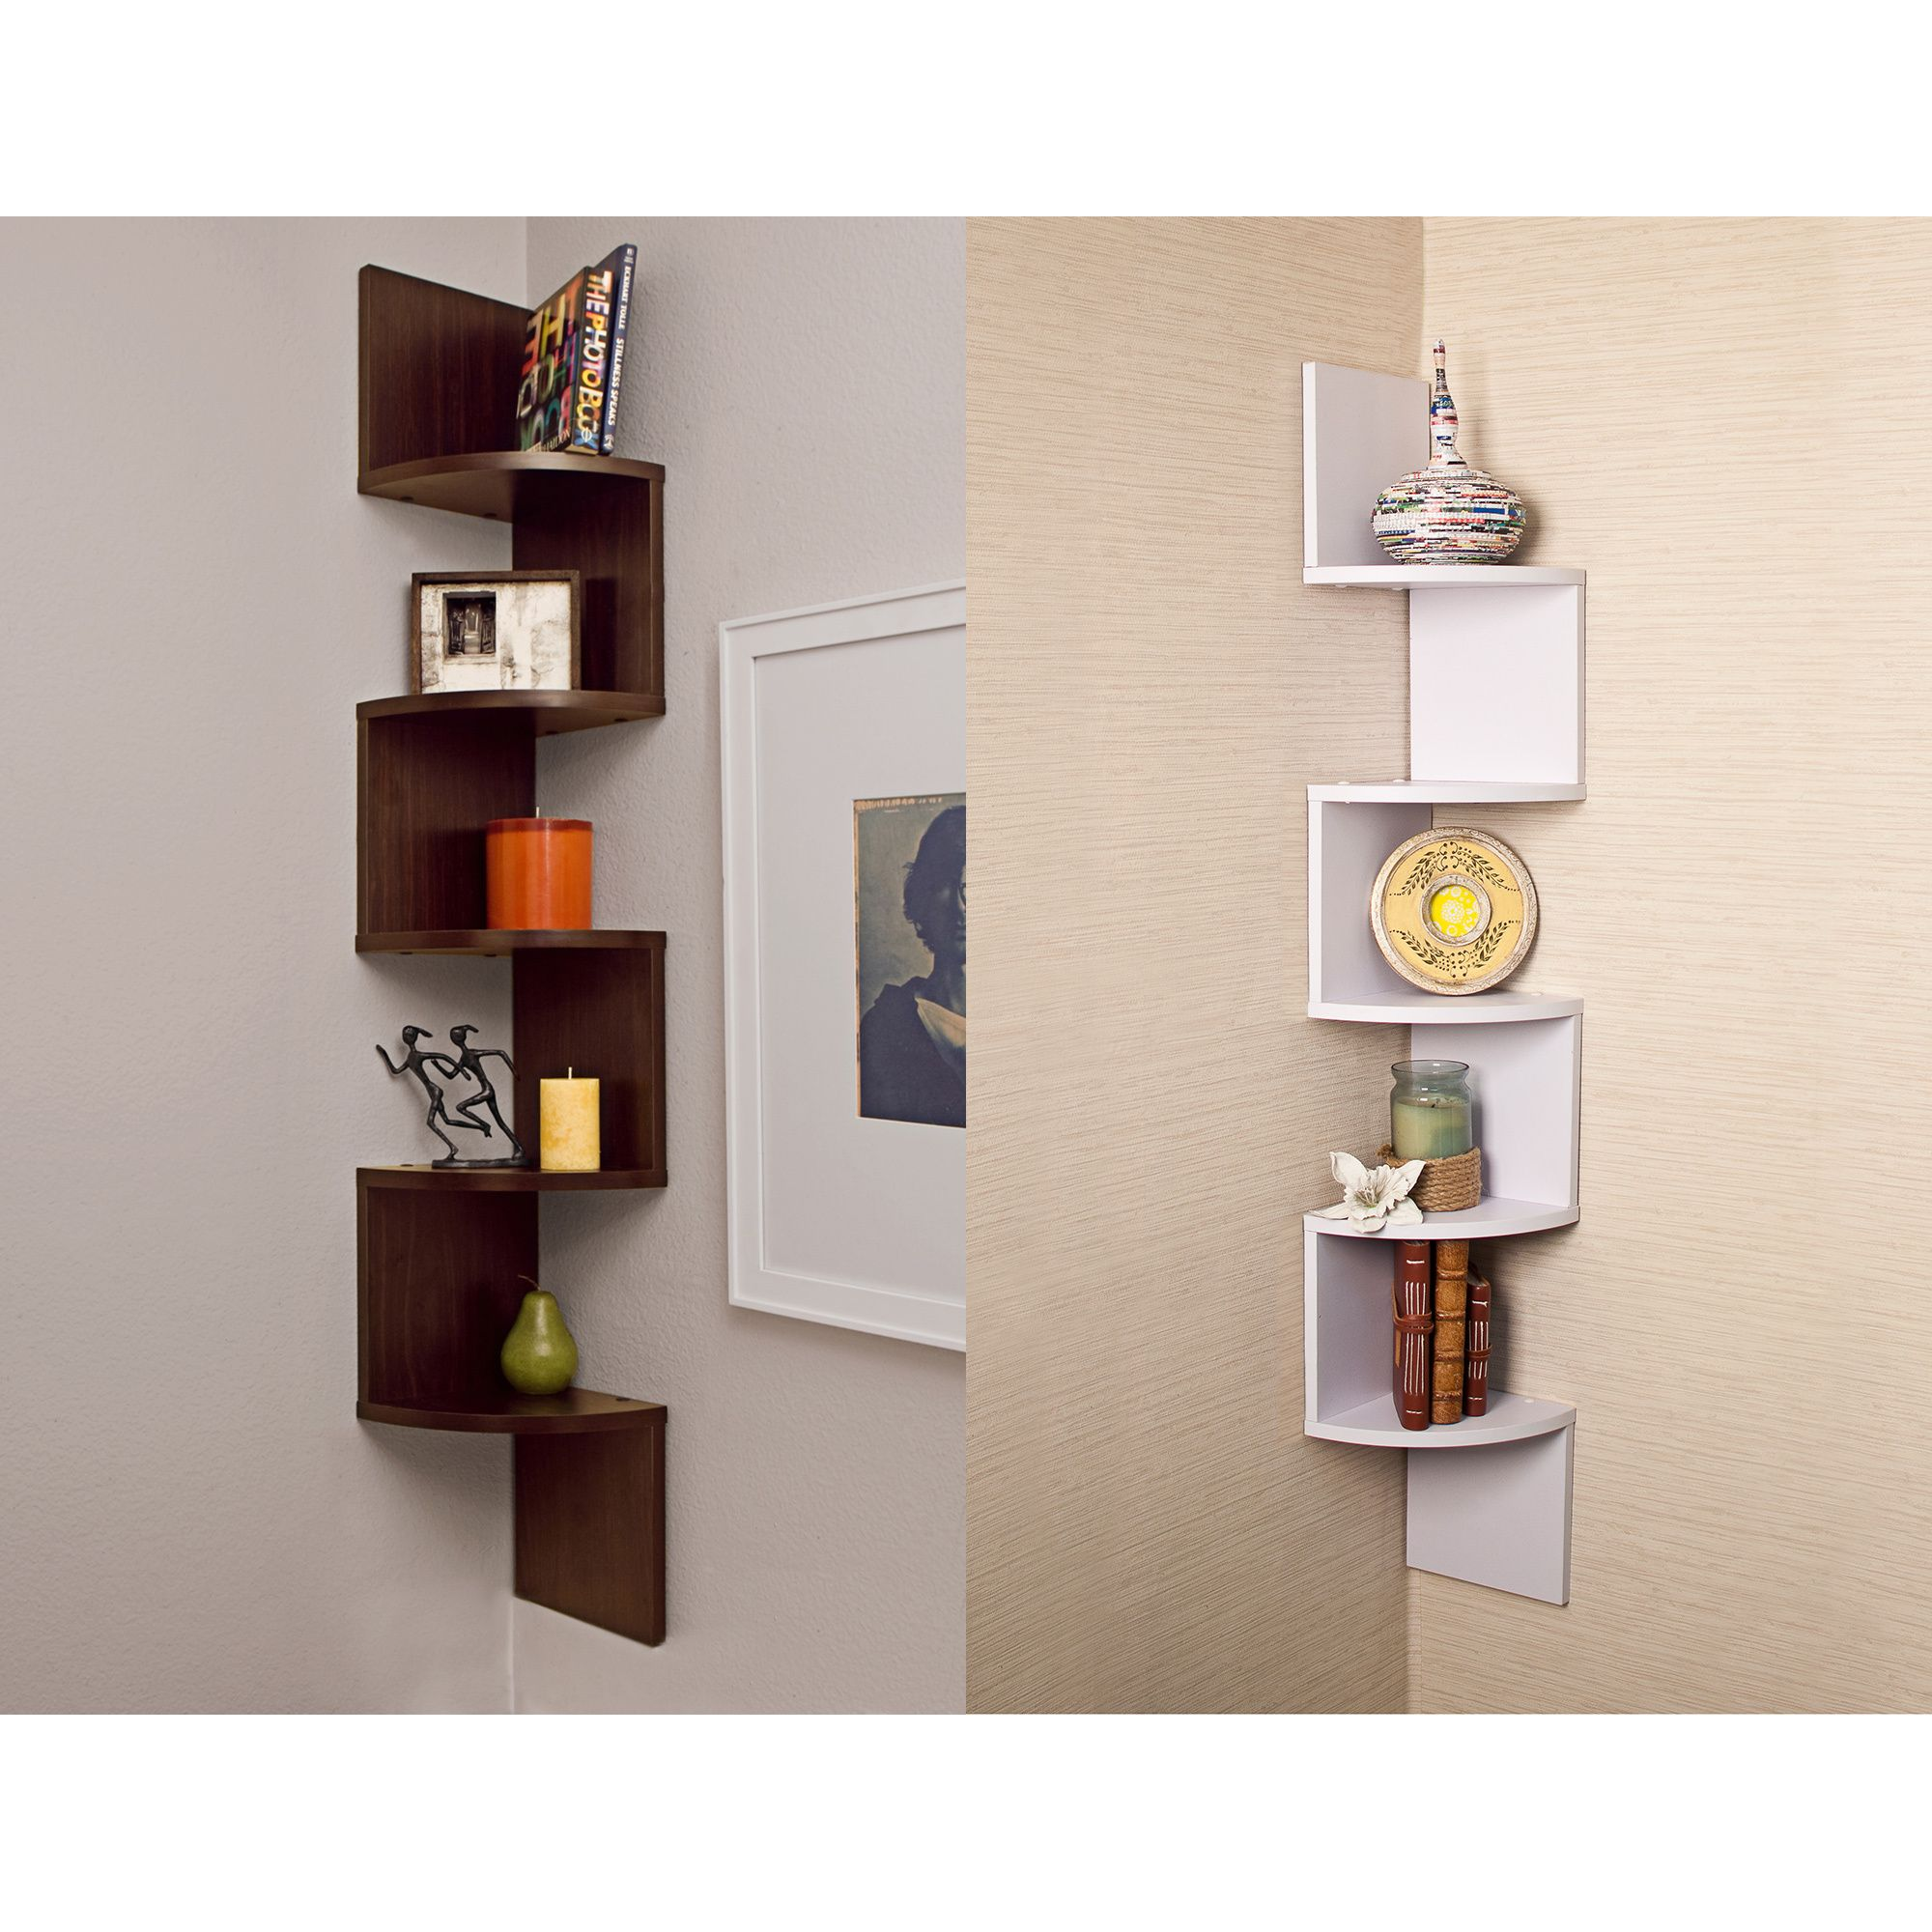 Overstock Com Online Shopping Bedding Furniture Electronics Jewelry Clothing More Unique Wall Shelves Contemporary Wall Shelf Wall Mounted Shelves